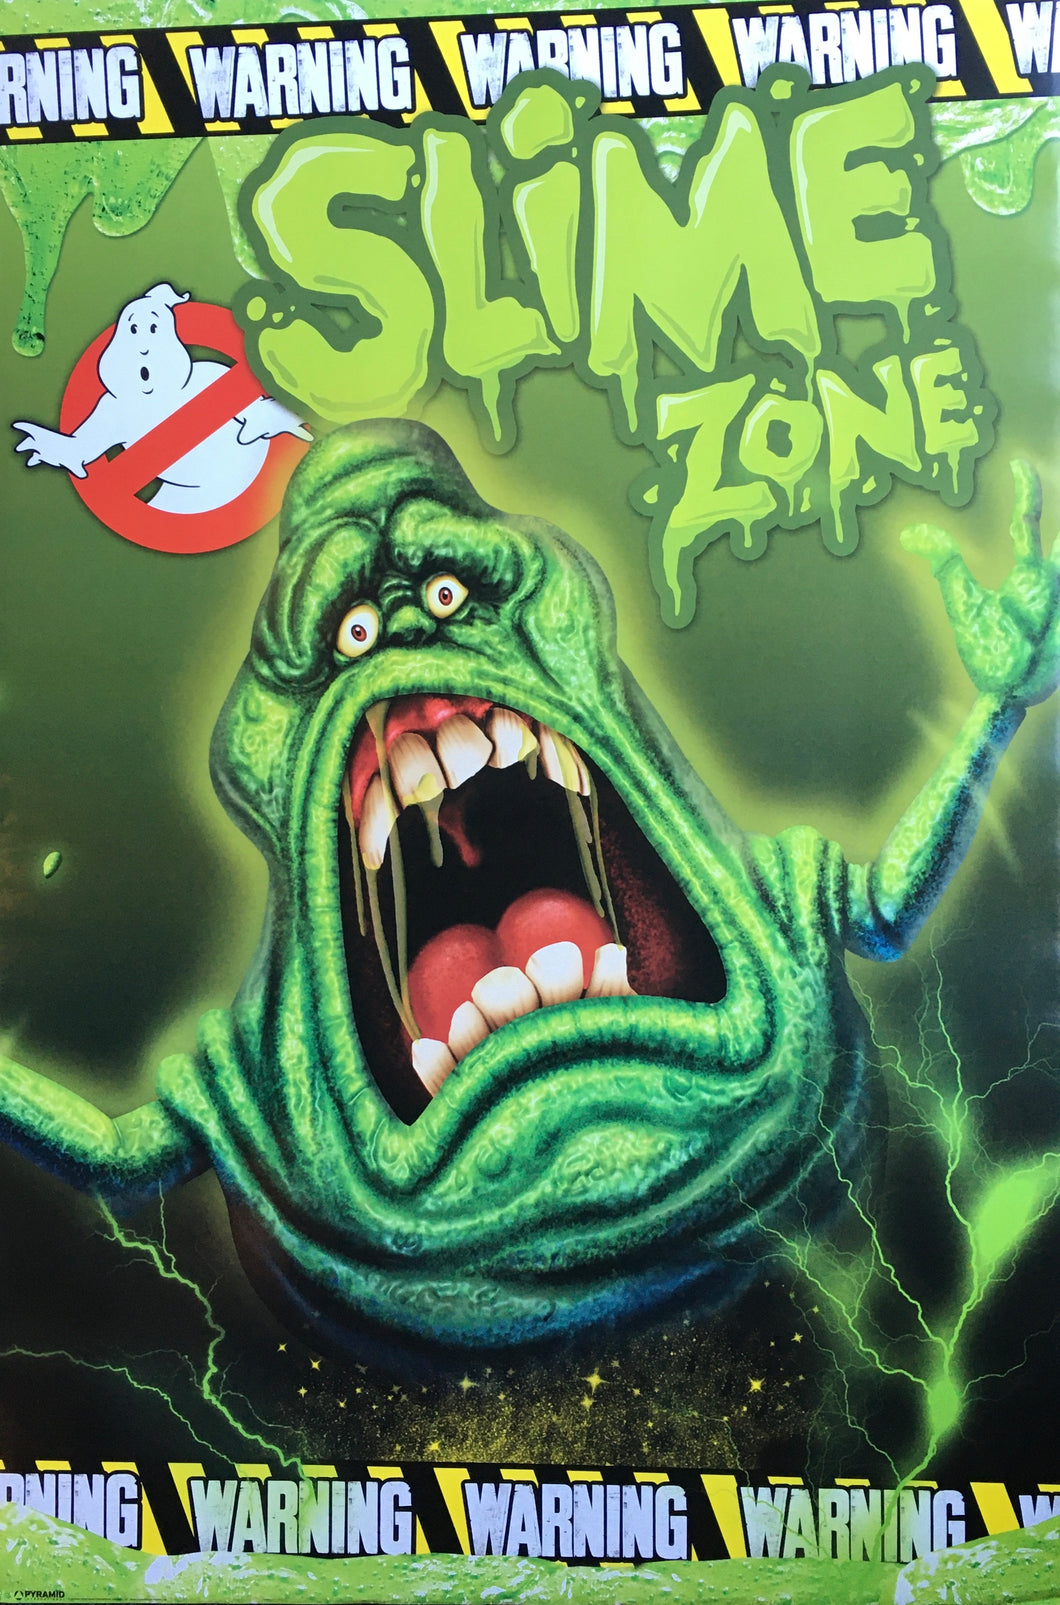 Ghostbusters - Warning Slime Zone